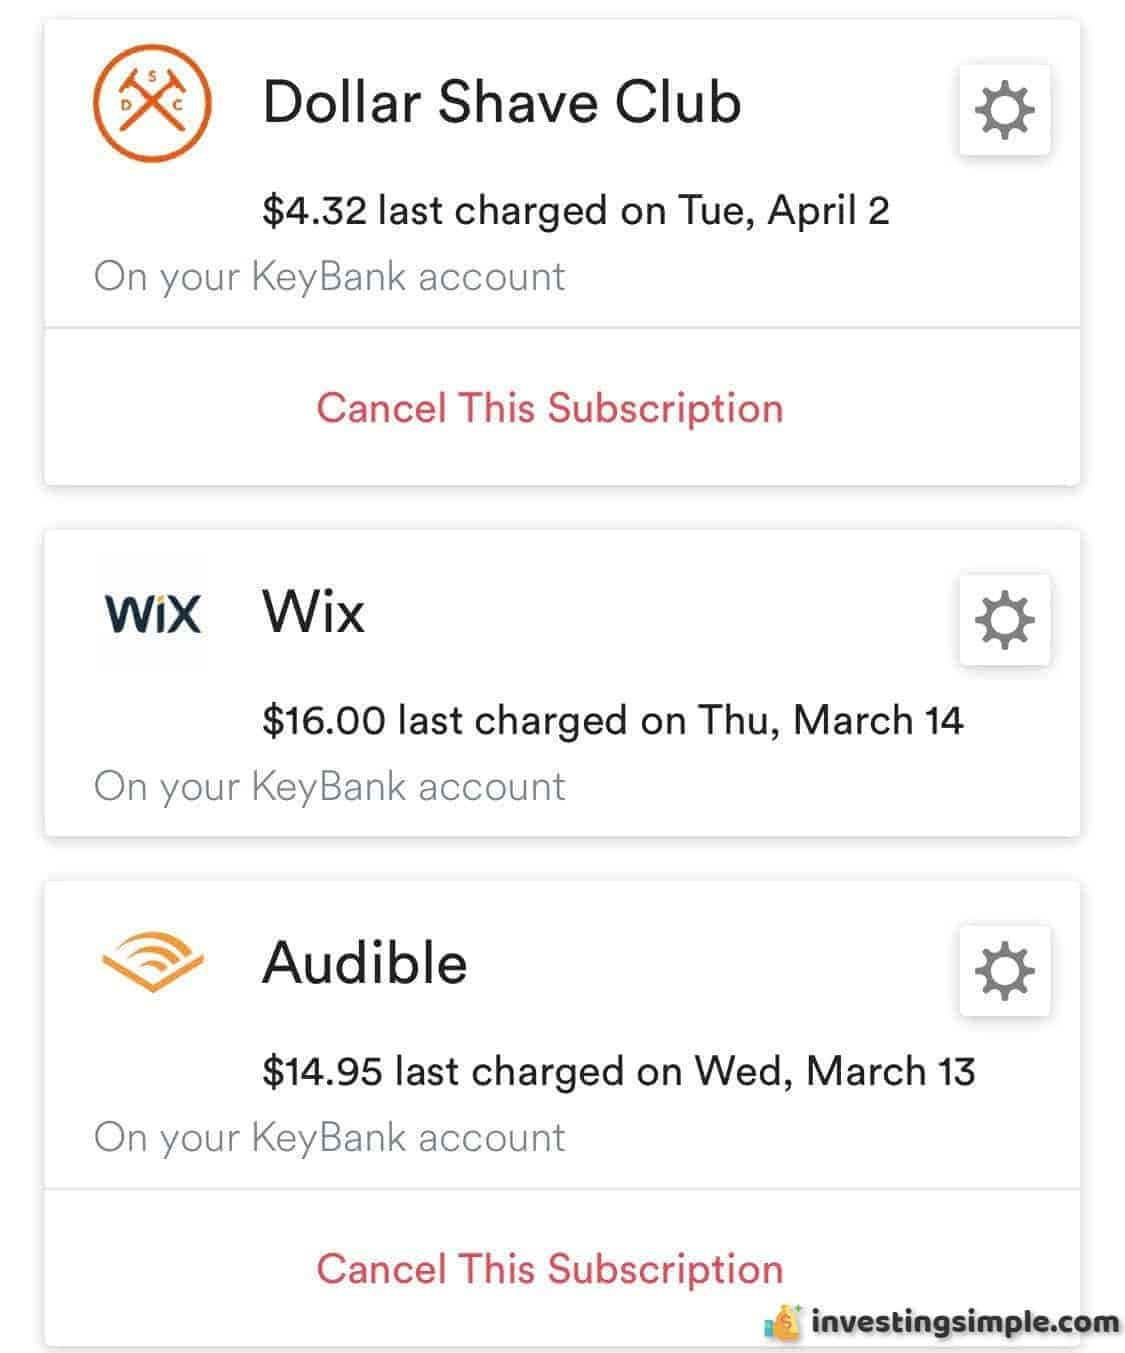 Trim keeps track of your subscriptions and notifies you monthly on how much it is costing you.